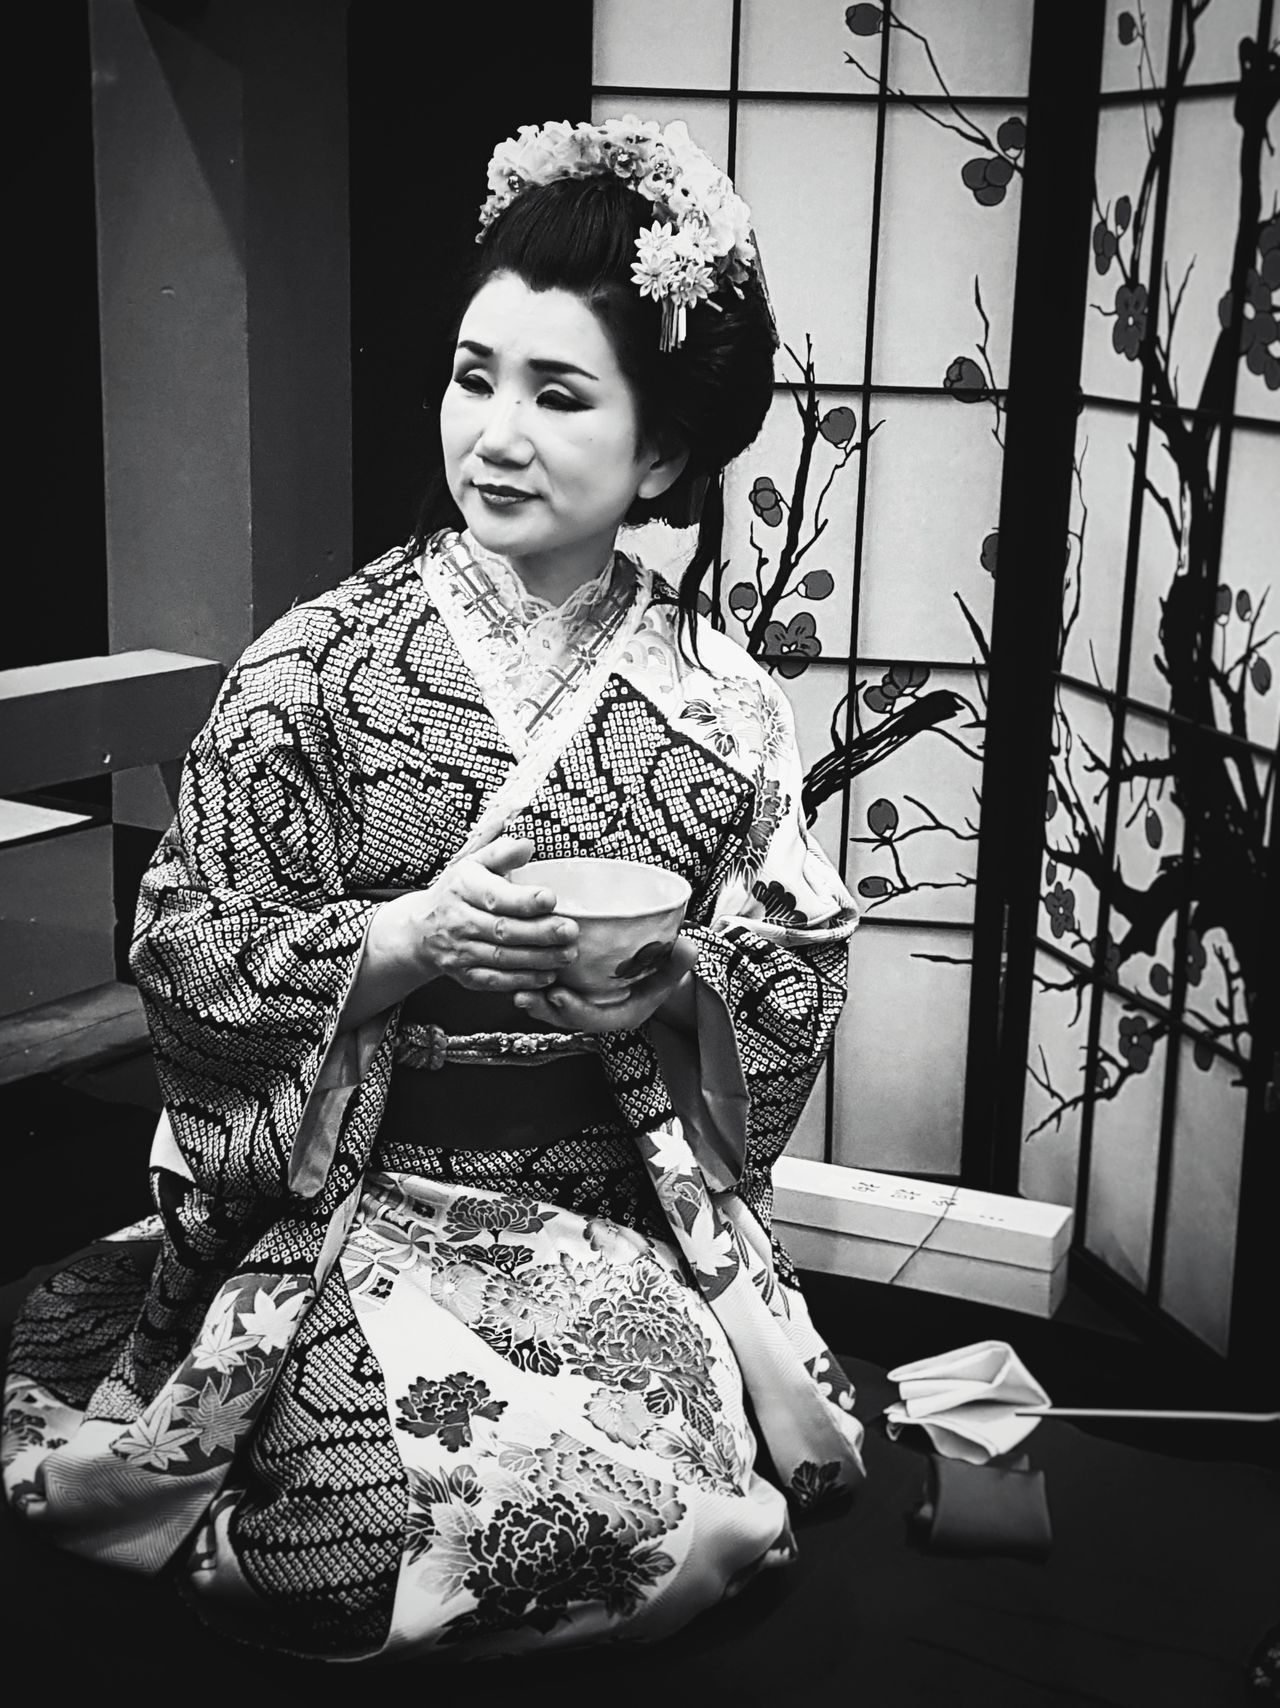 Japanese Culture Japan Photography Japanese Traditional Japan Japanese Style Japanese  Traditional Culture Traditional Clothing Tradition Ceremony Of Tea Women Who Inspire You Woman Portrait Woman Power BW Collection Black And White Portrait Black & White Blackandwhite Photography Geisha Blackandwhite Lifestyles Old-fashioned Portrait Week On Eyeem EyeEm New Here Women Around The World